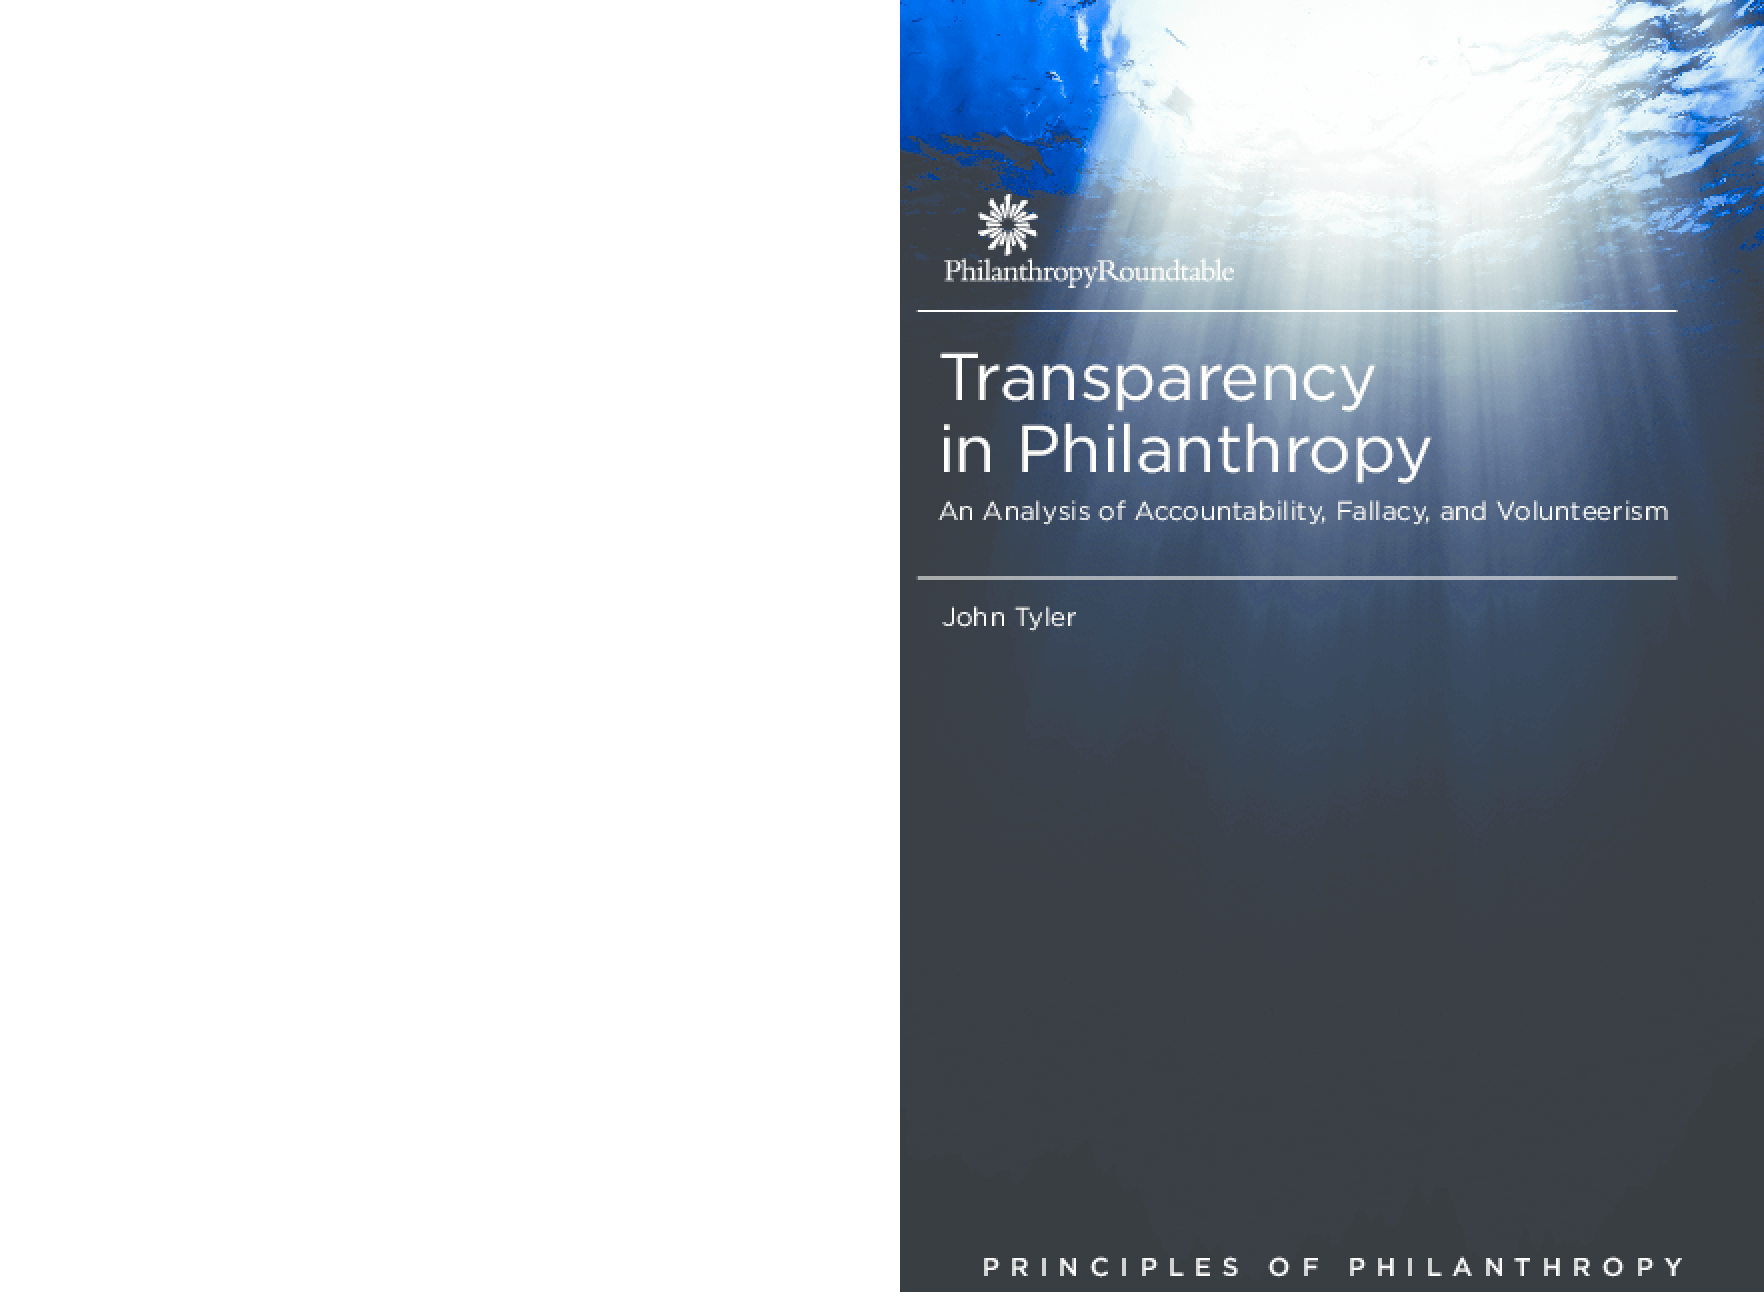 Transparency in Philanthropy: An Analysis of Accountability, Fallacy, and Volunteerism